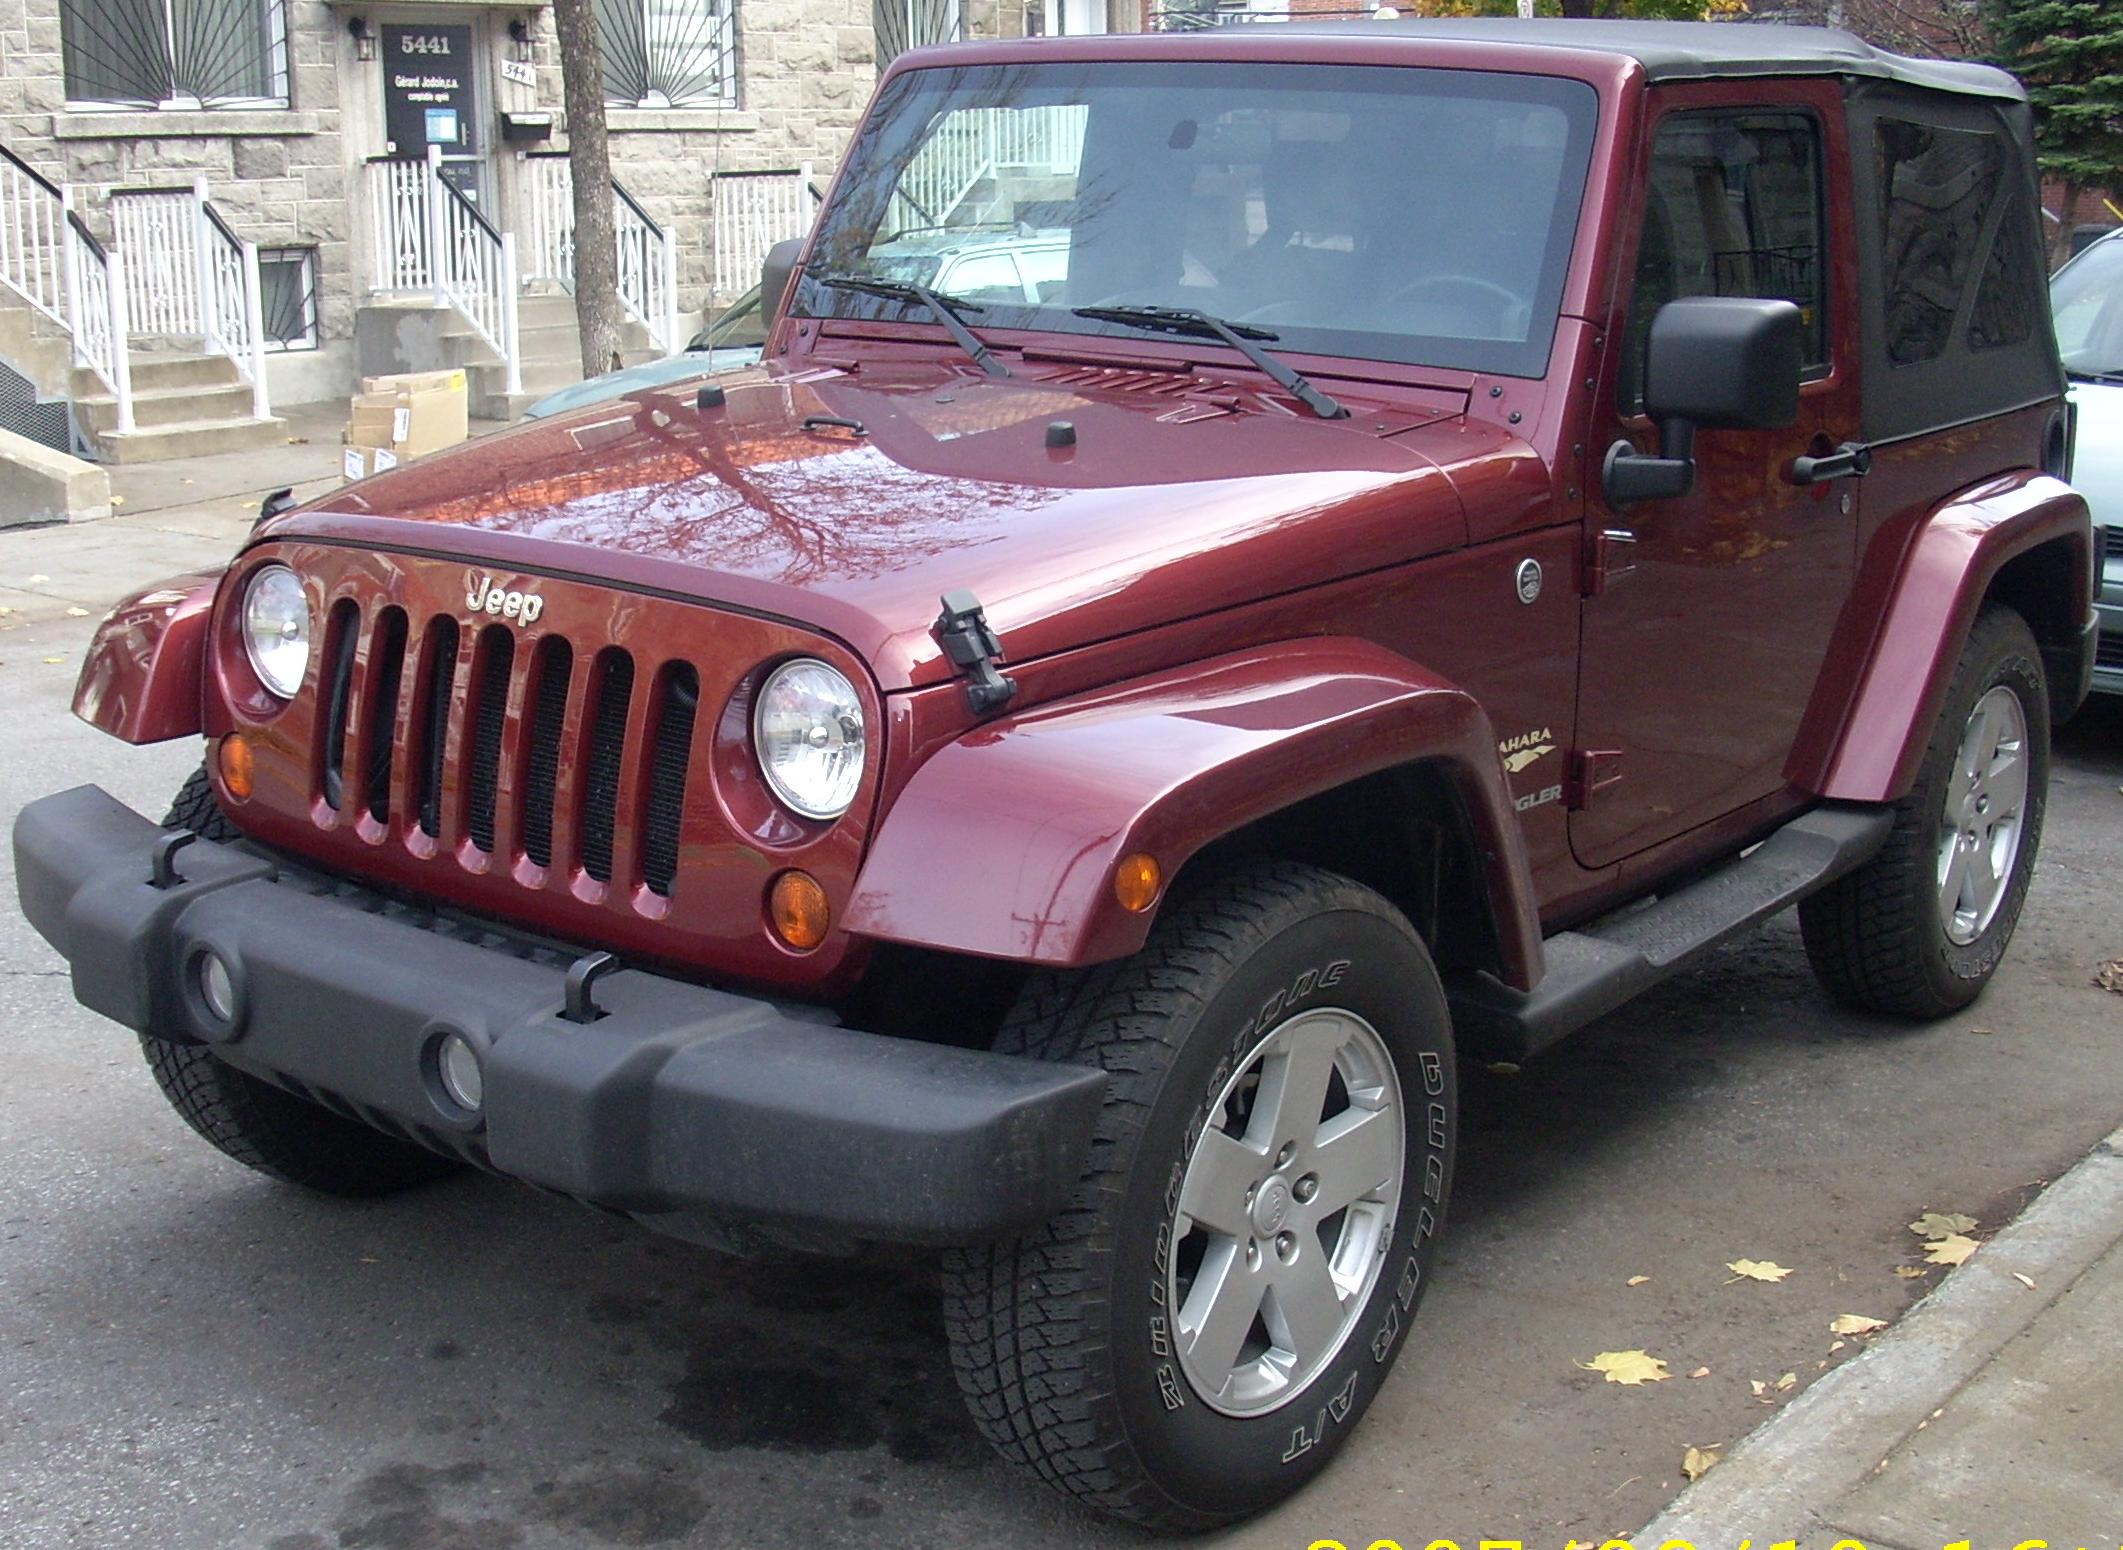 Jeep Wrangler Tj Build >> File:Jeep JK Wrangler Sahara 2-Door Convertible.jpg - Wikimedia Commons